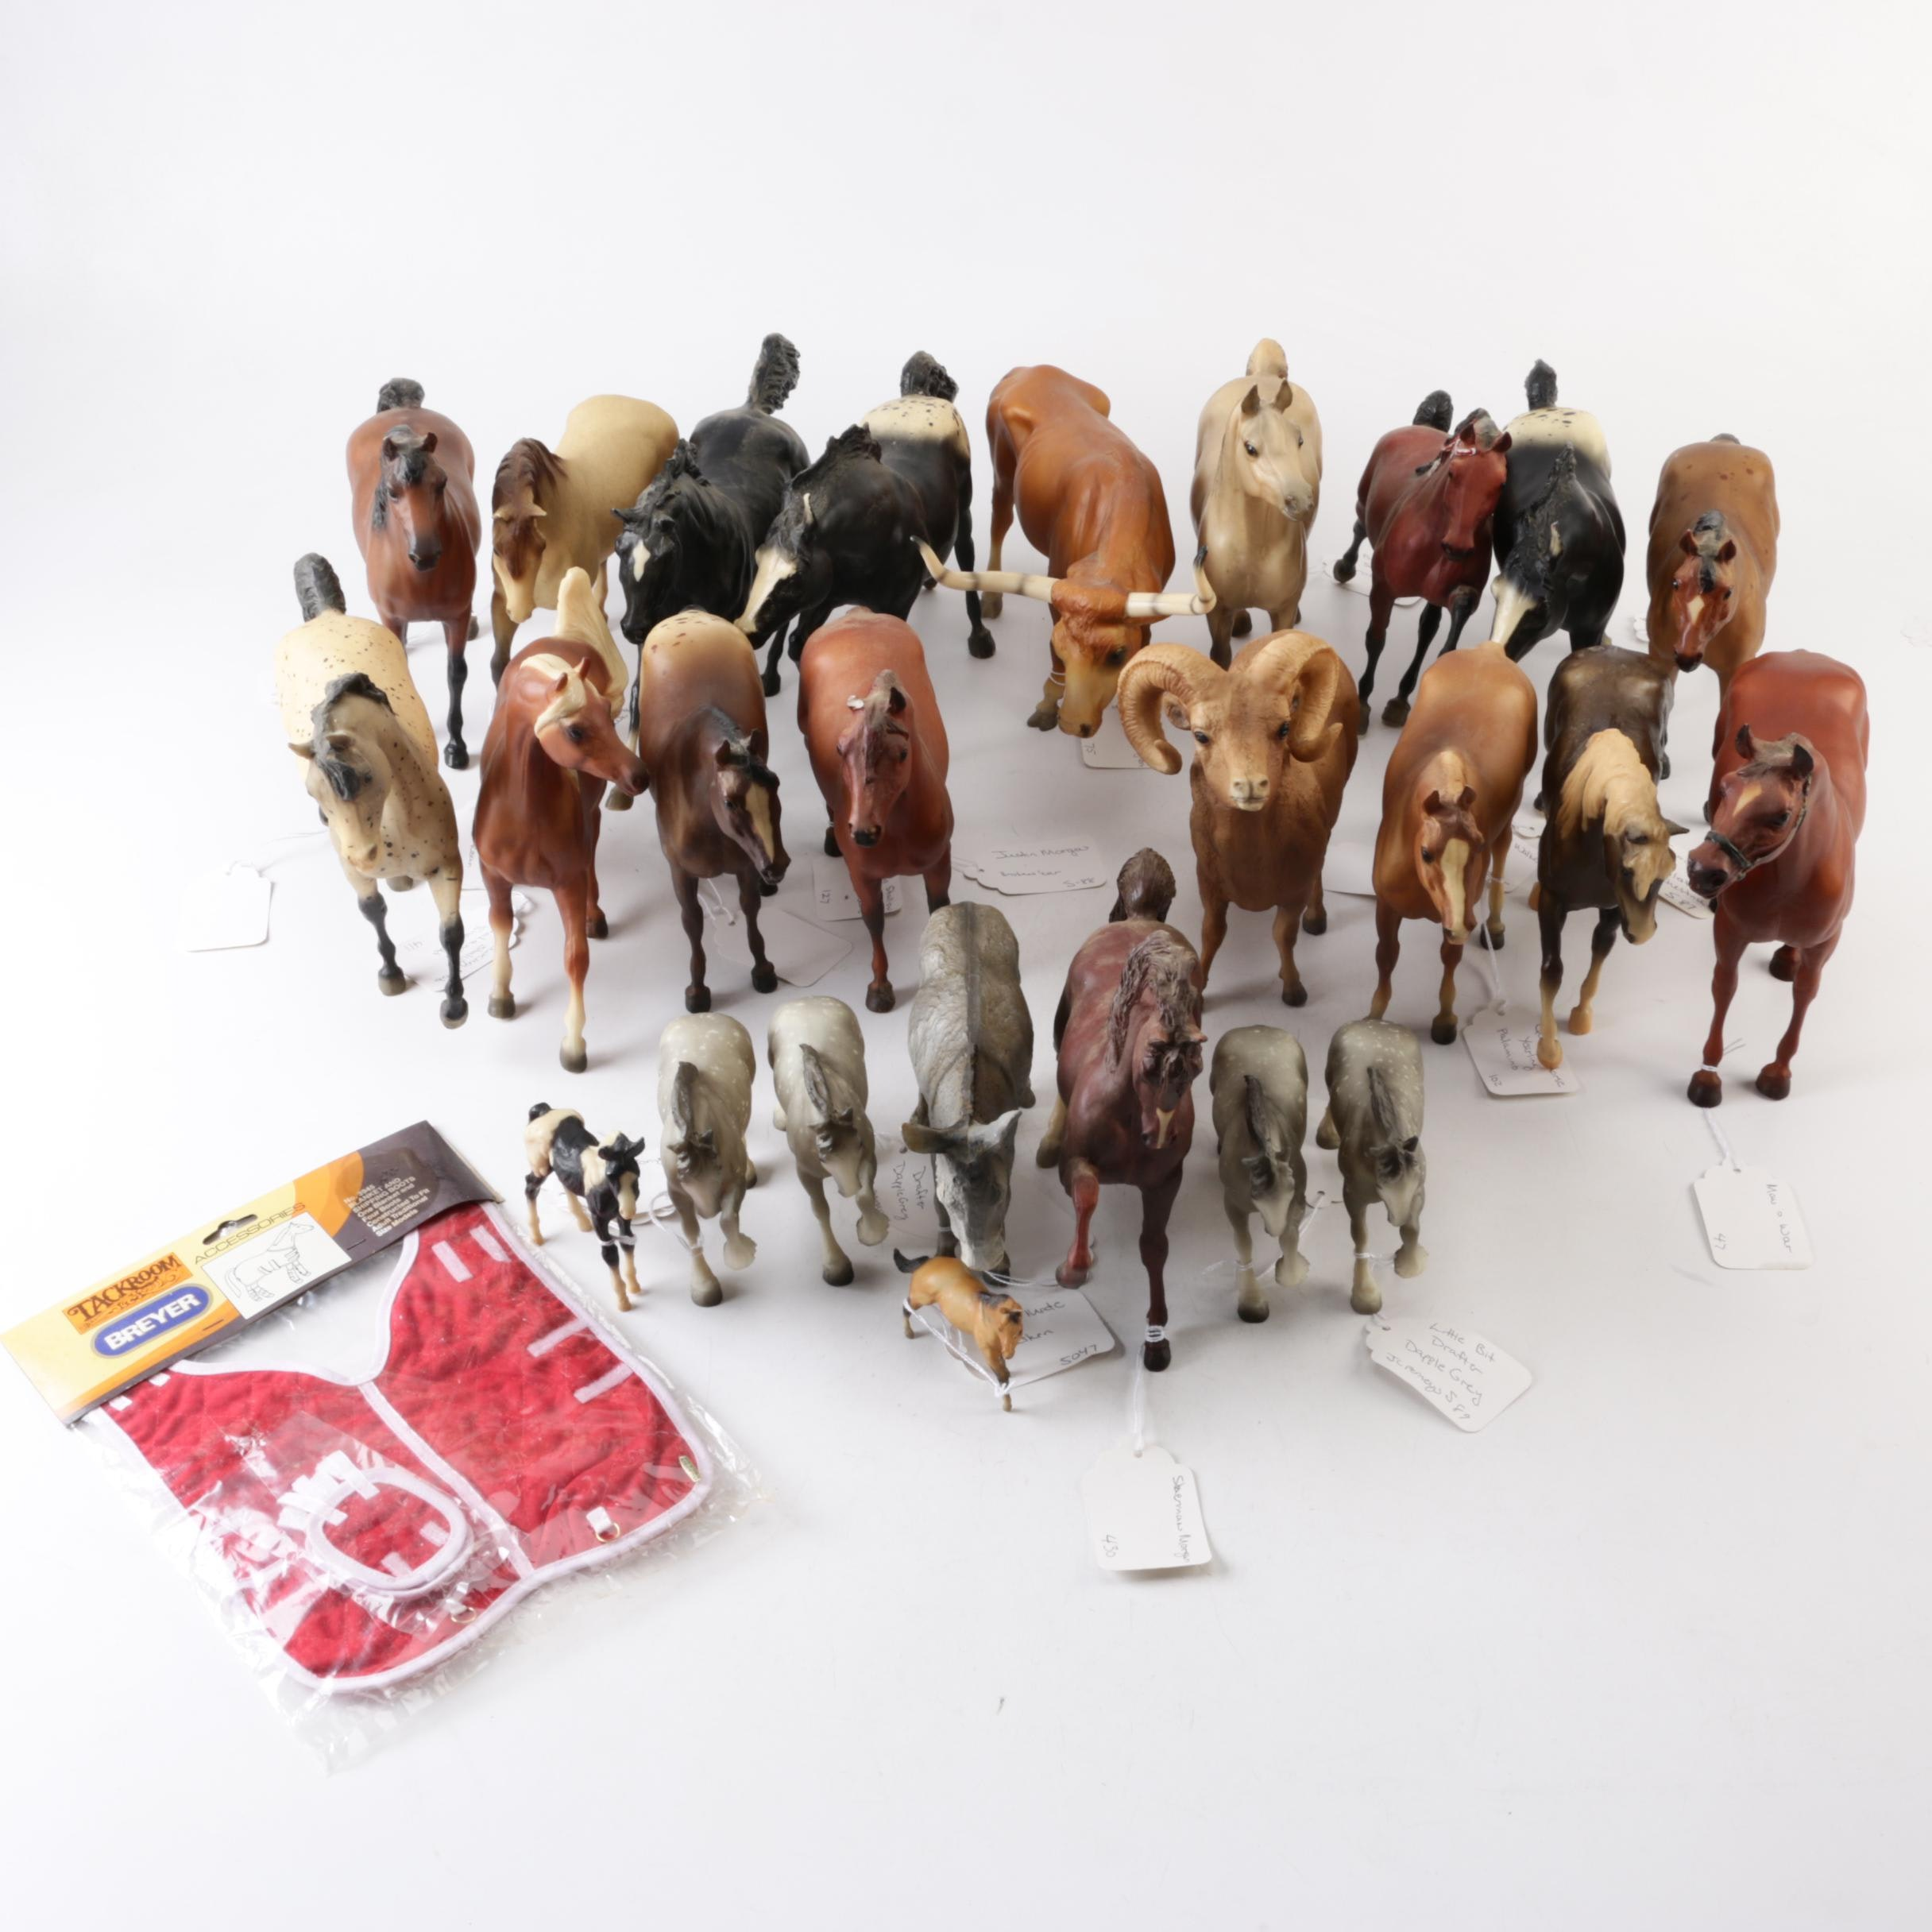 Horse Figurines Featuring Breyer With Tack Accessory, Bull, and Ram